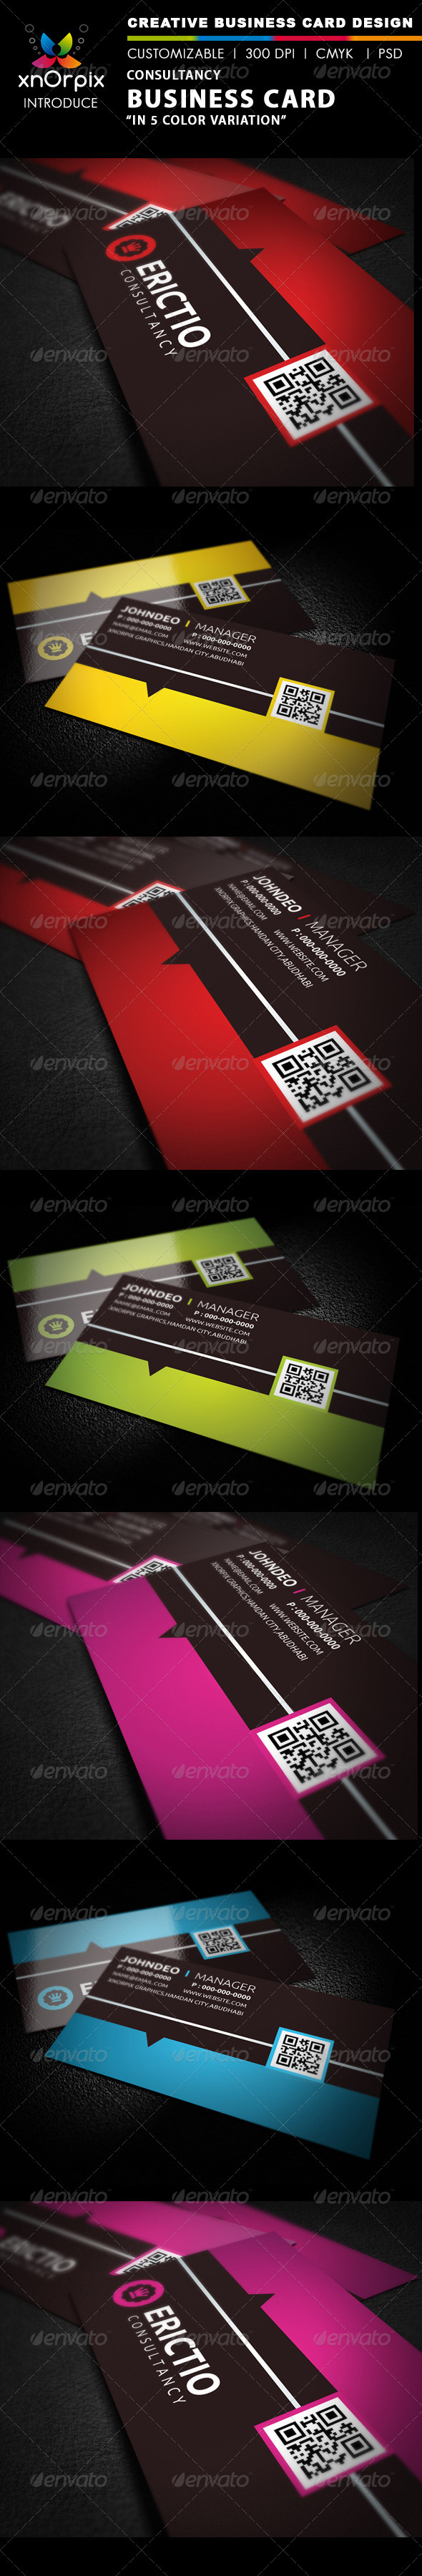 Consultancy Business Card - Business Cards Print Templates